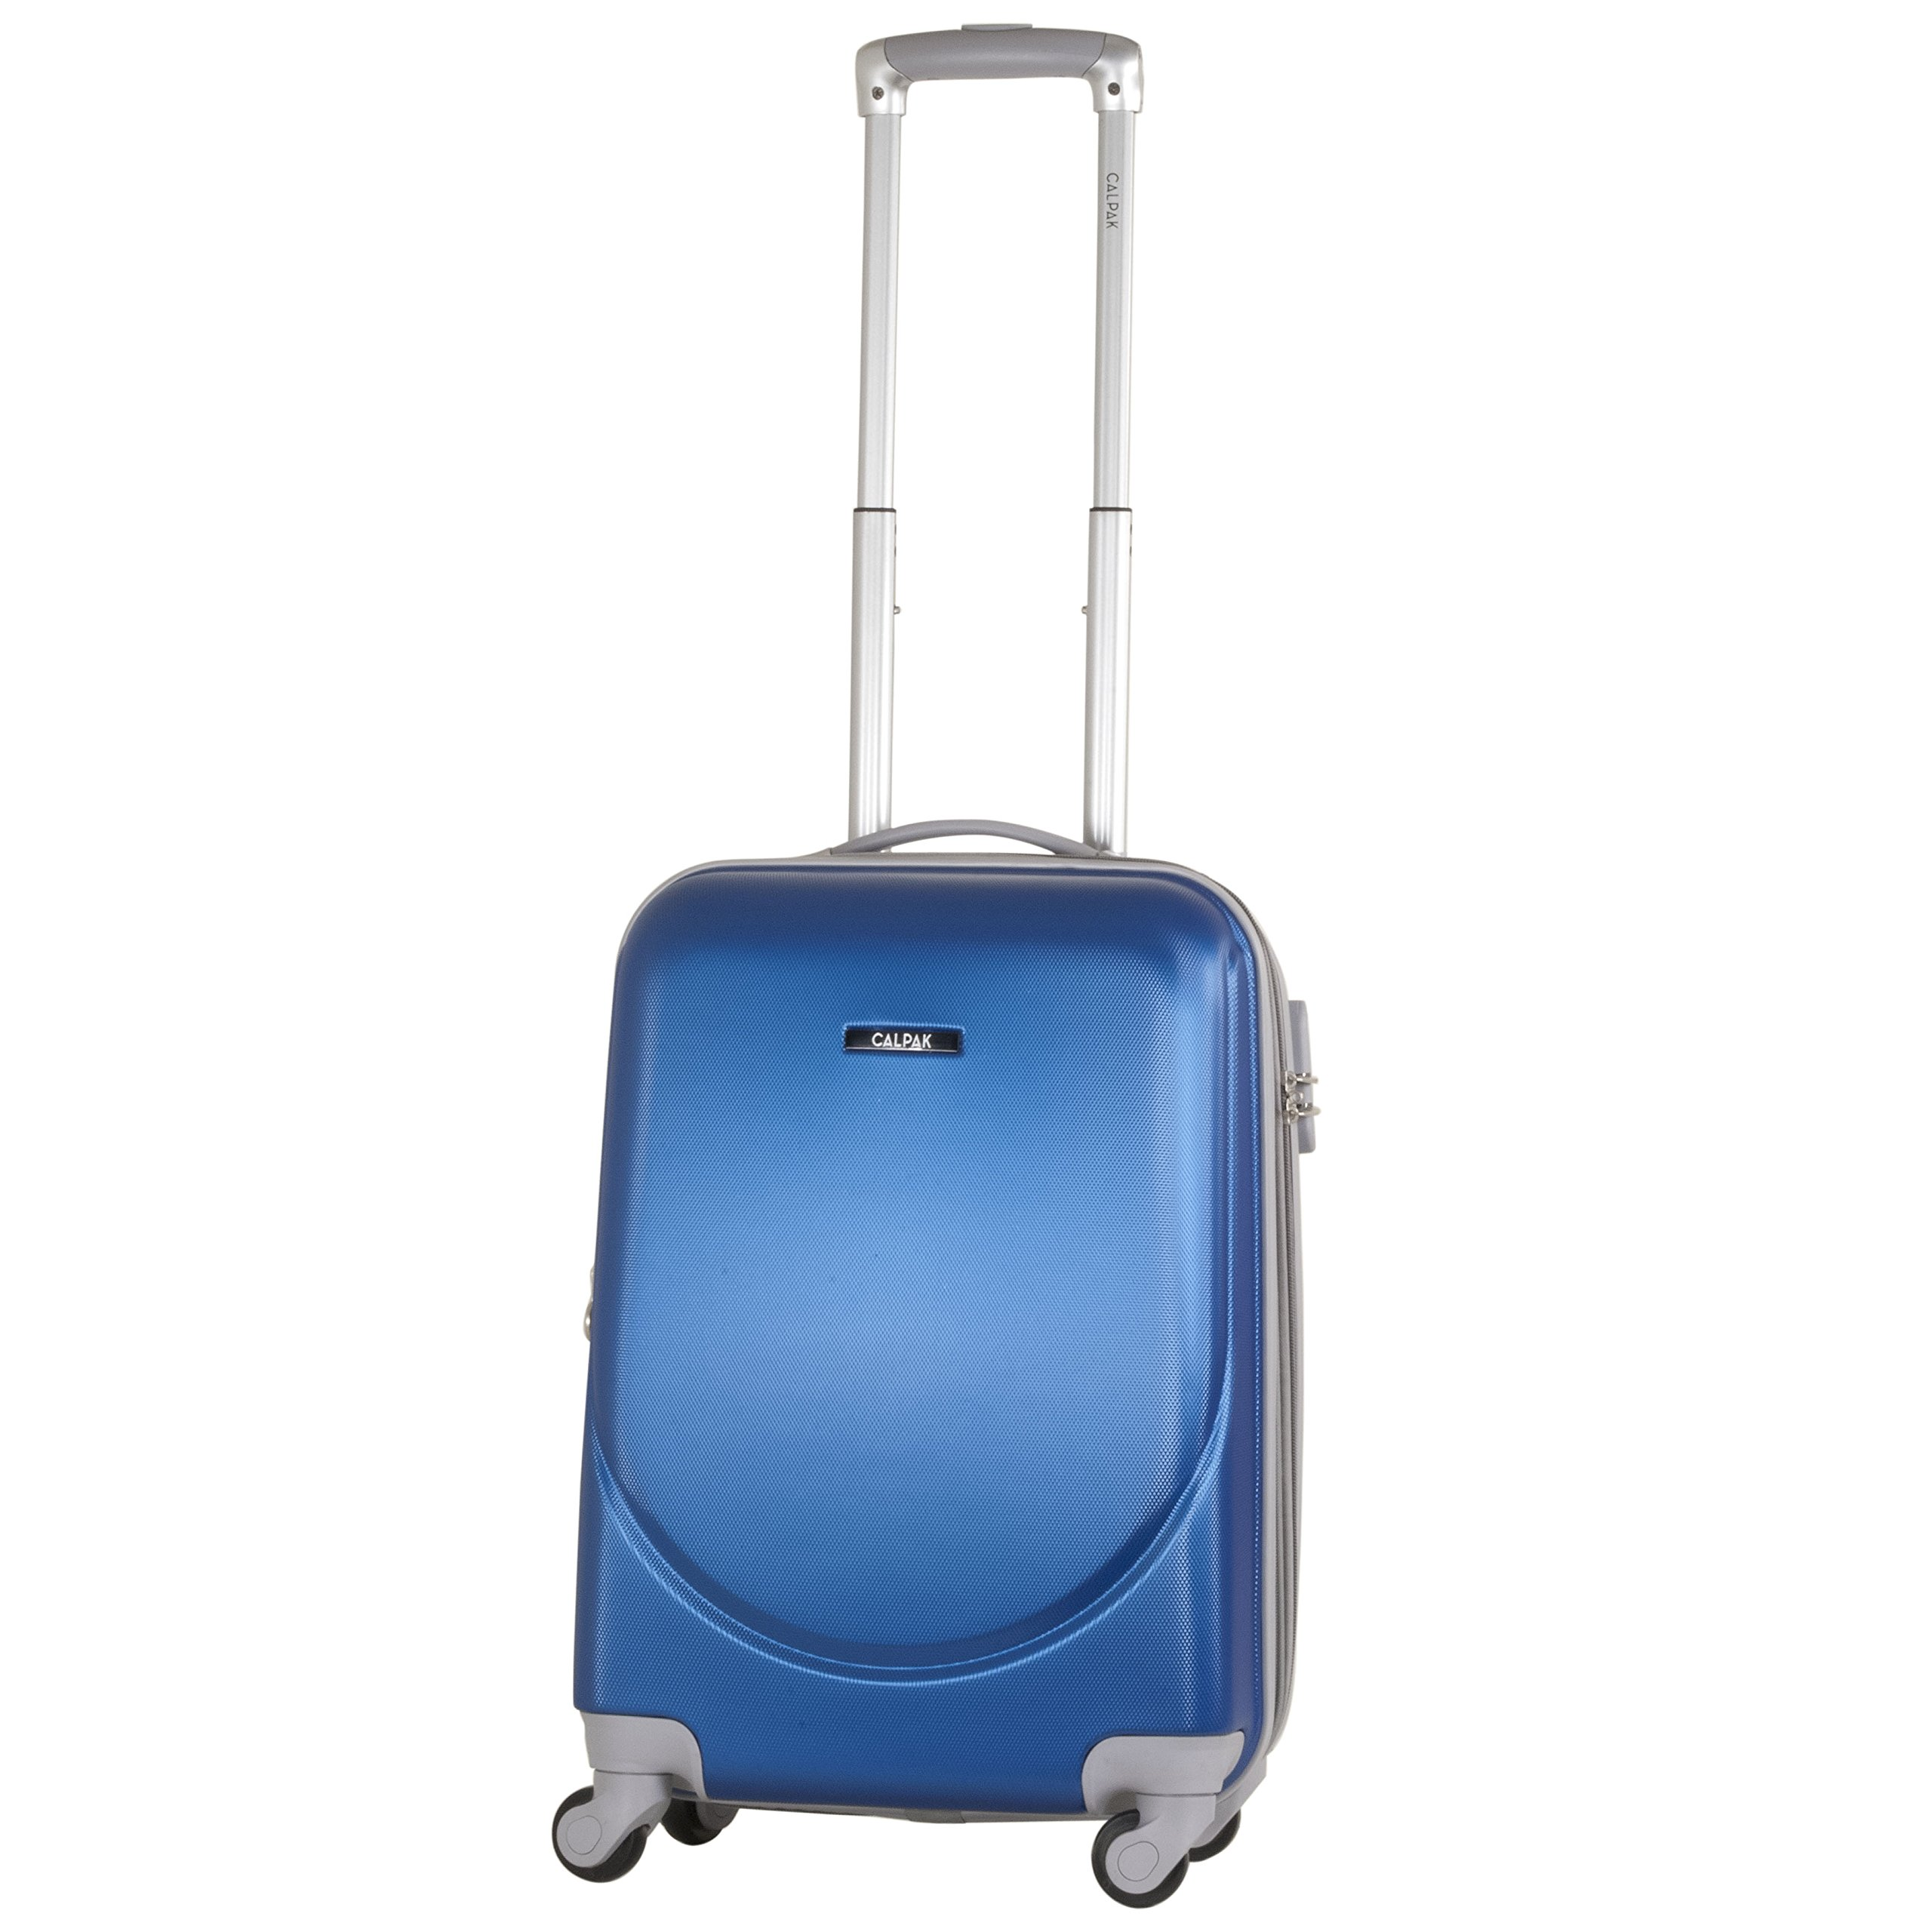 Calpak Silverlake Blue 20-inch Carry-on Lightweight Expandable Hardsided Upright Suitcase by CalPak